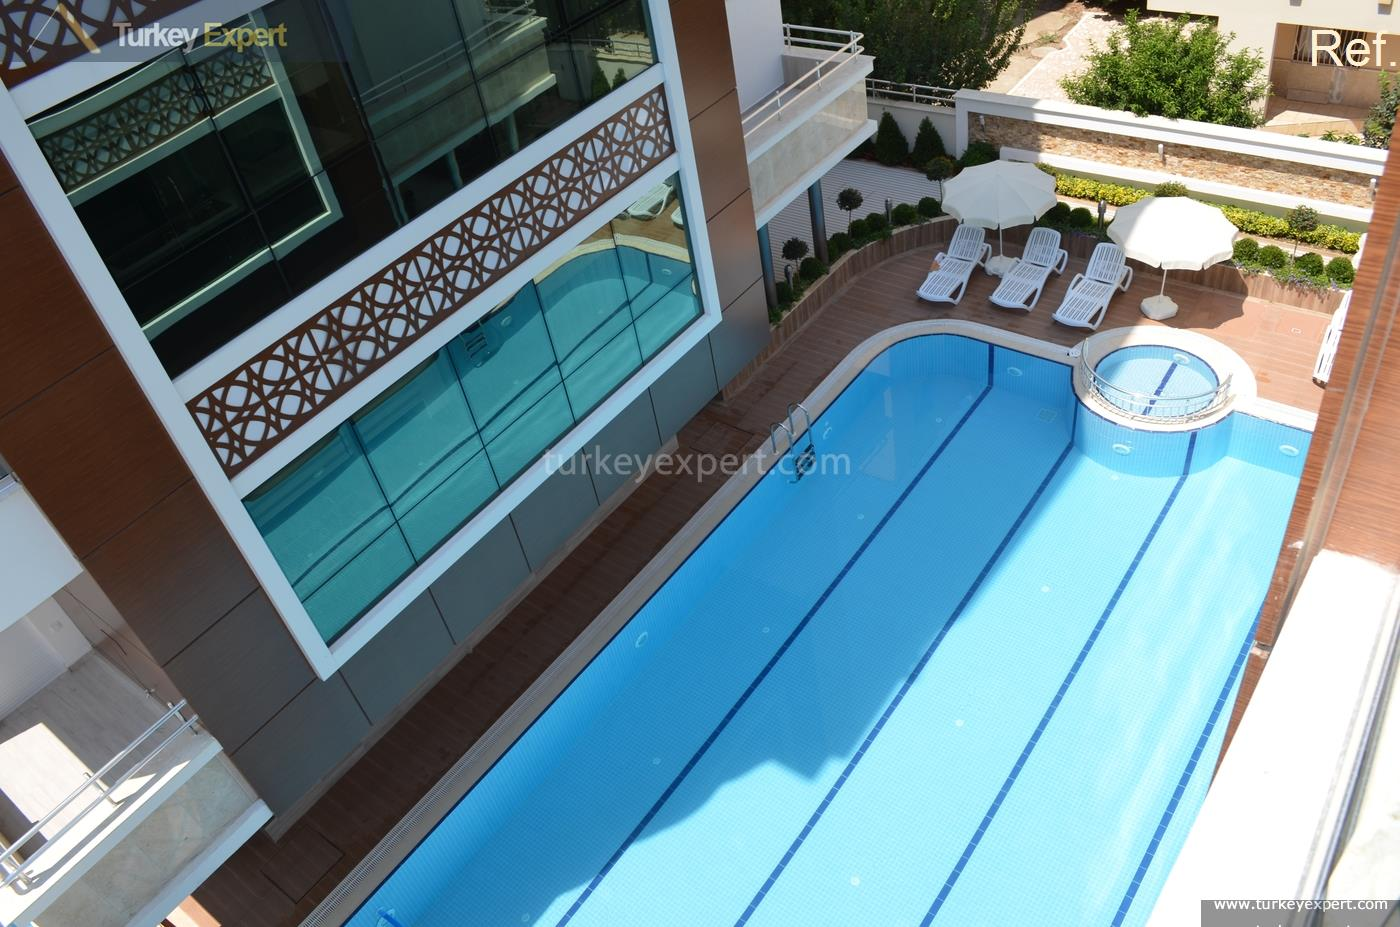 apartments for sale in antalya2.